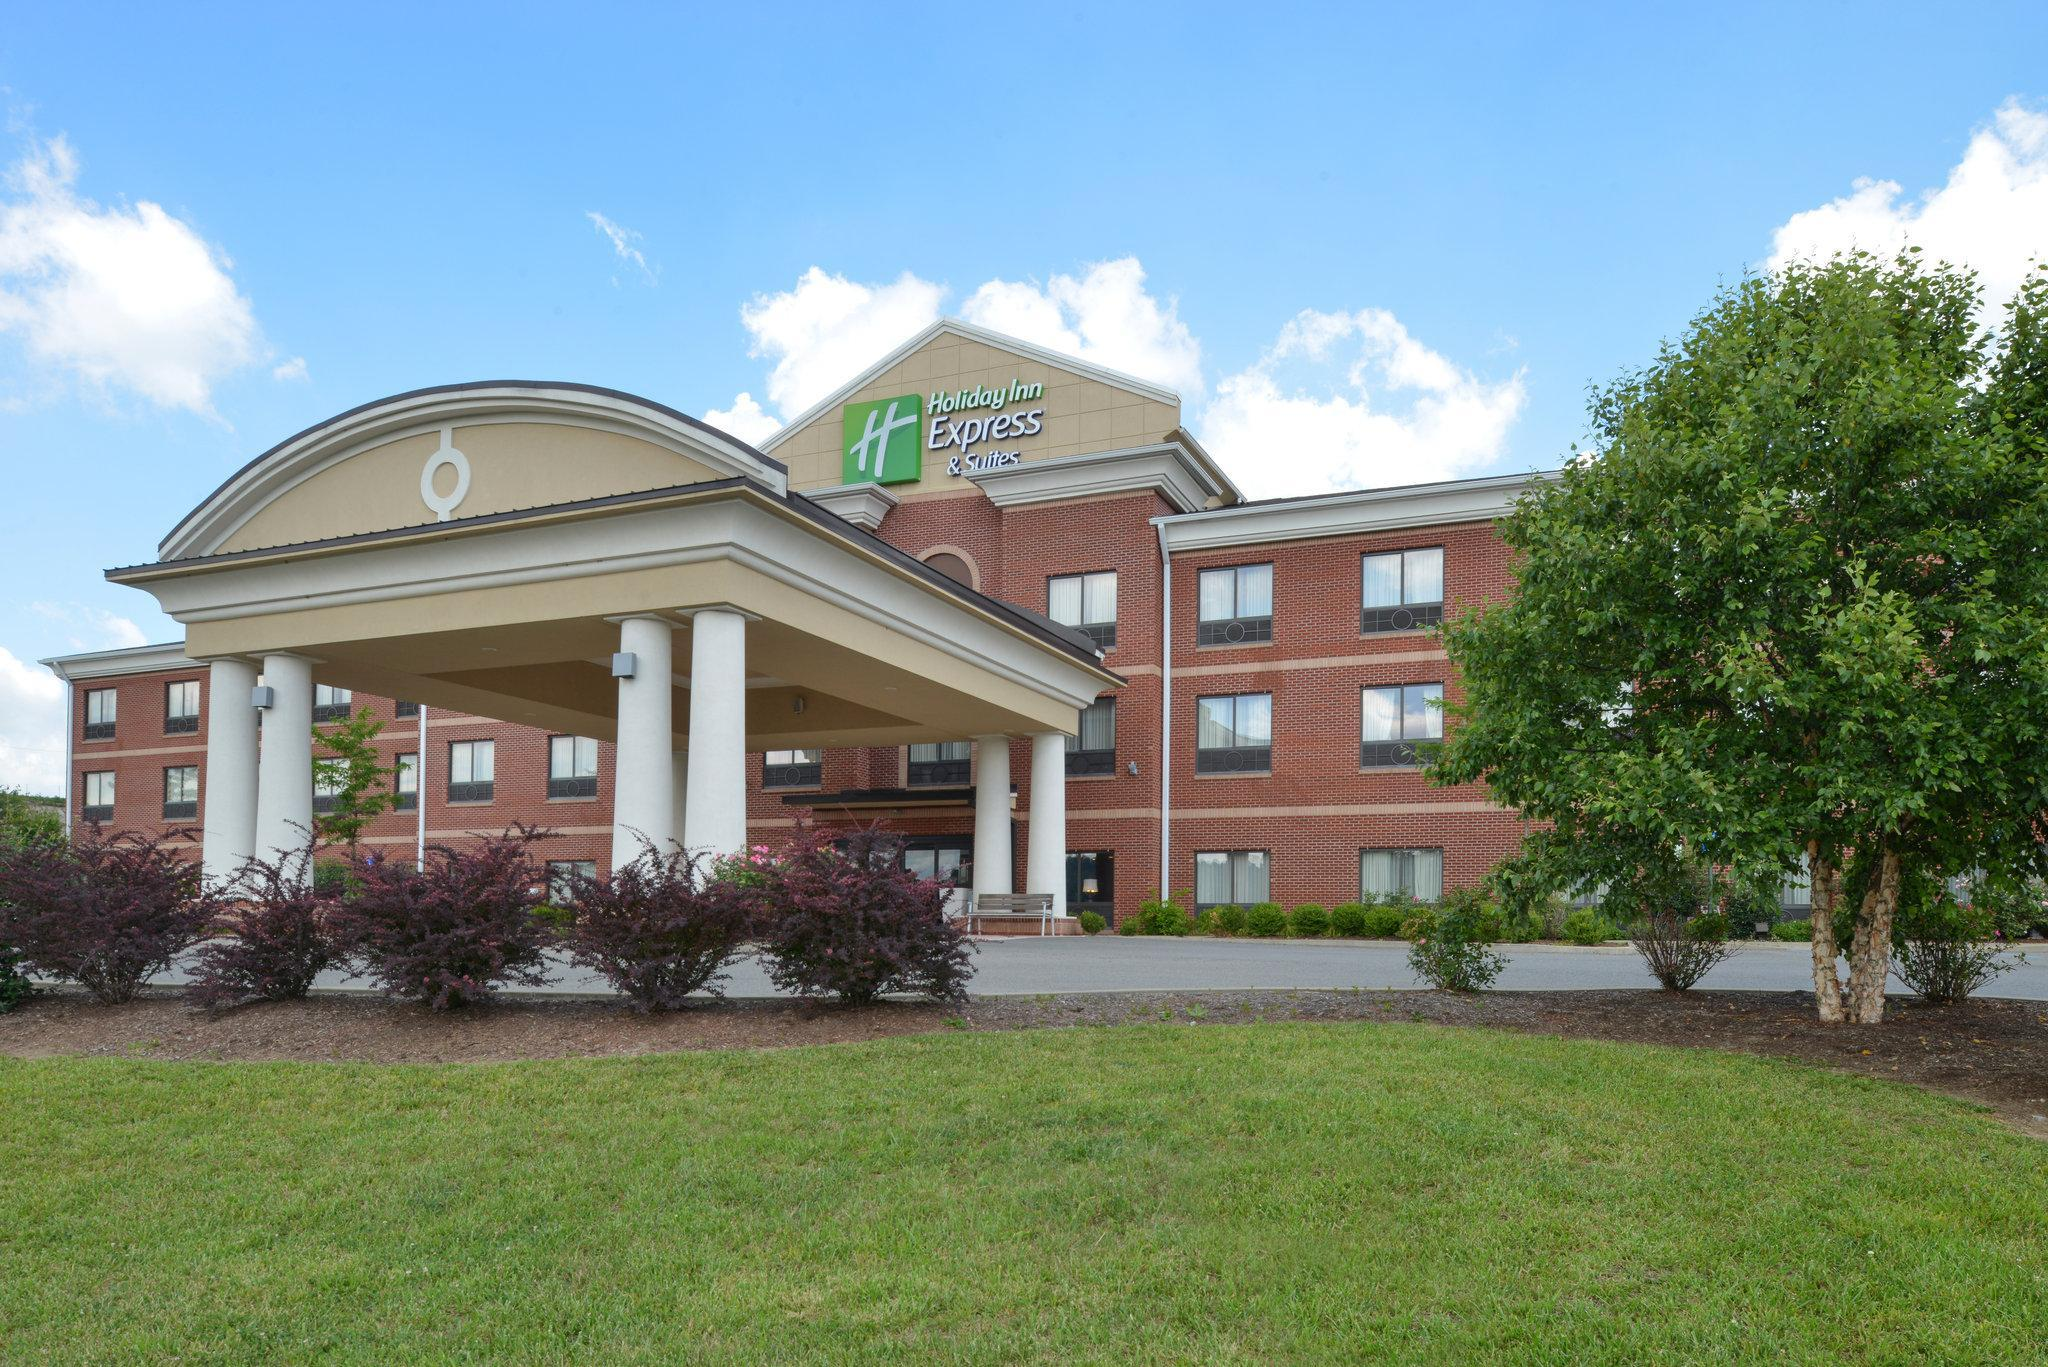 Holiday Inn Express & Suites Bridgeport, Harrison